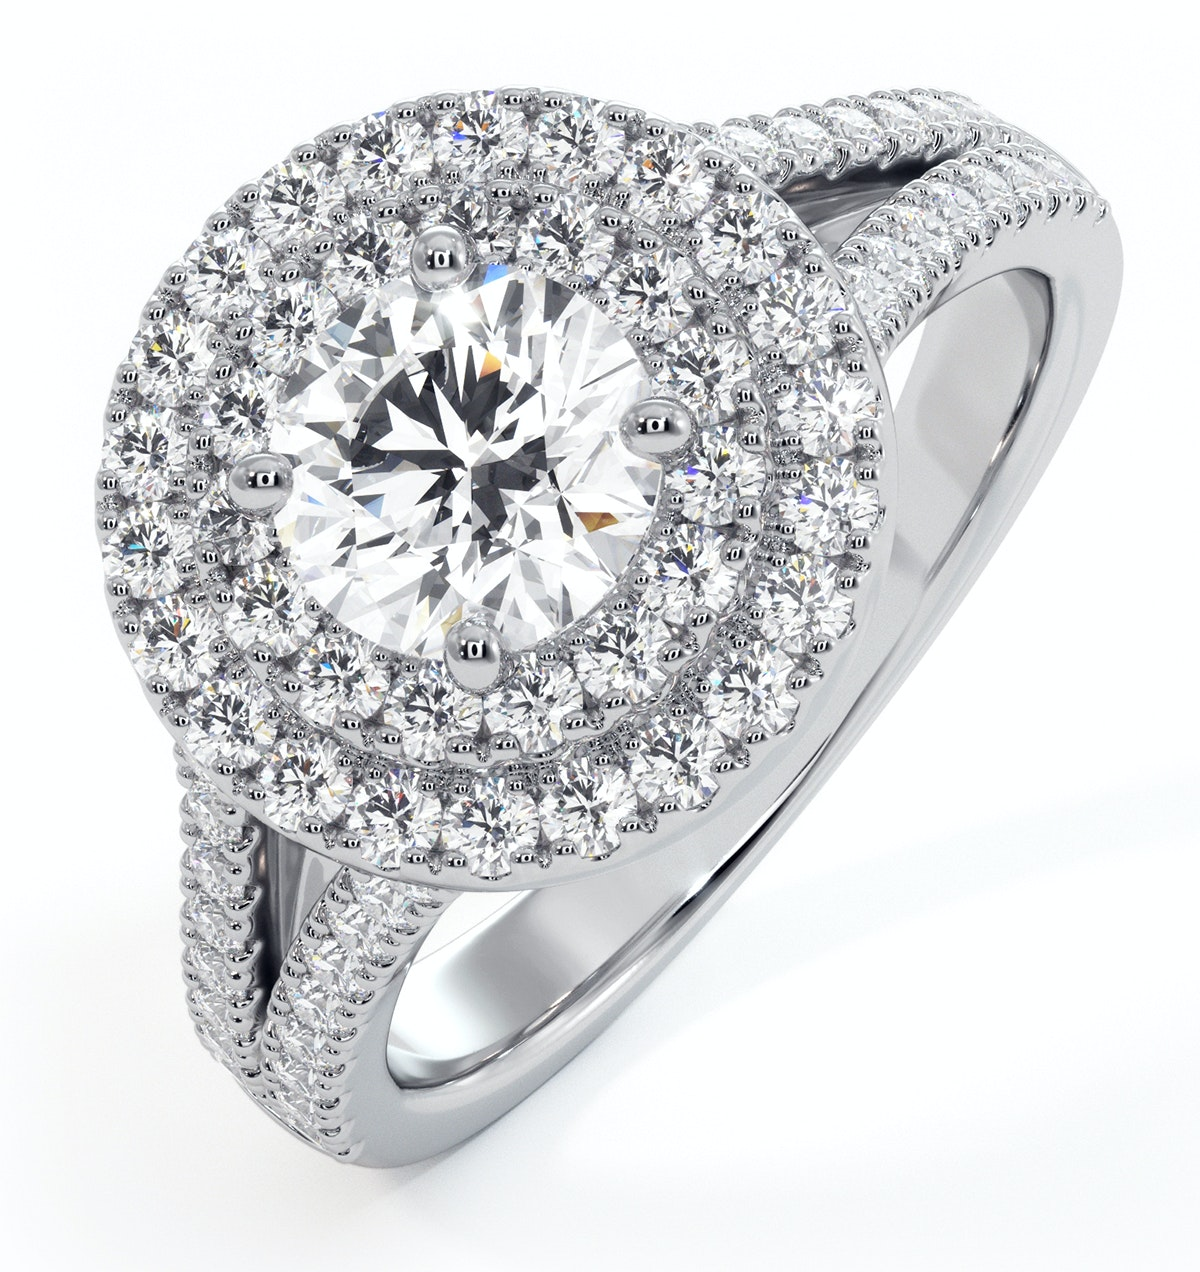 Camilla GIA Diamond Halo Engagement Ring in Platinum 1.65ct G/SI2